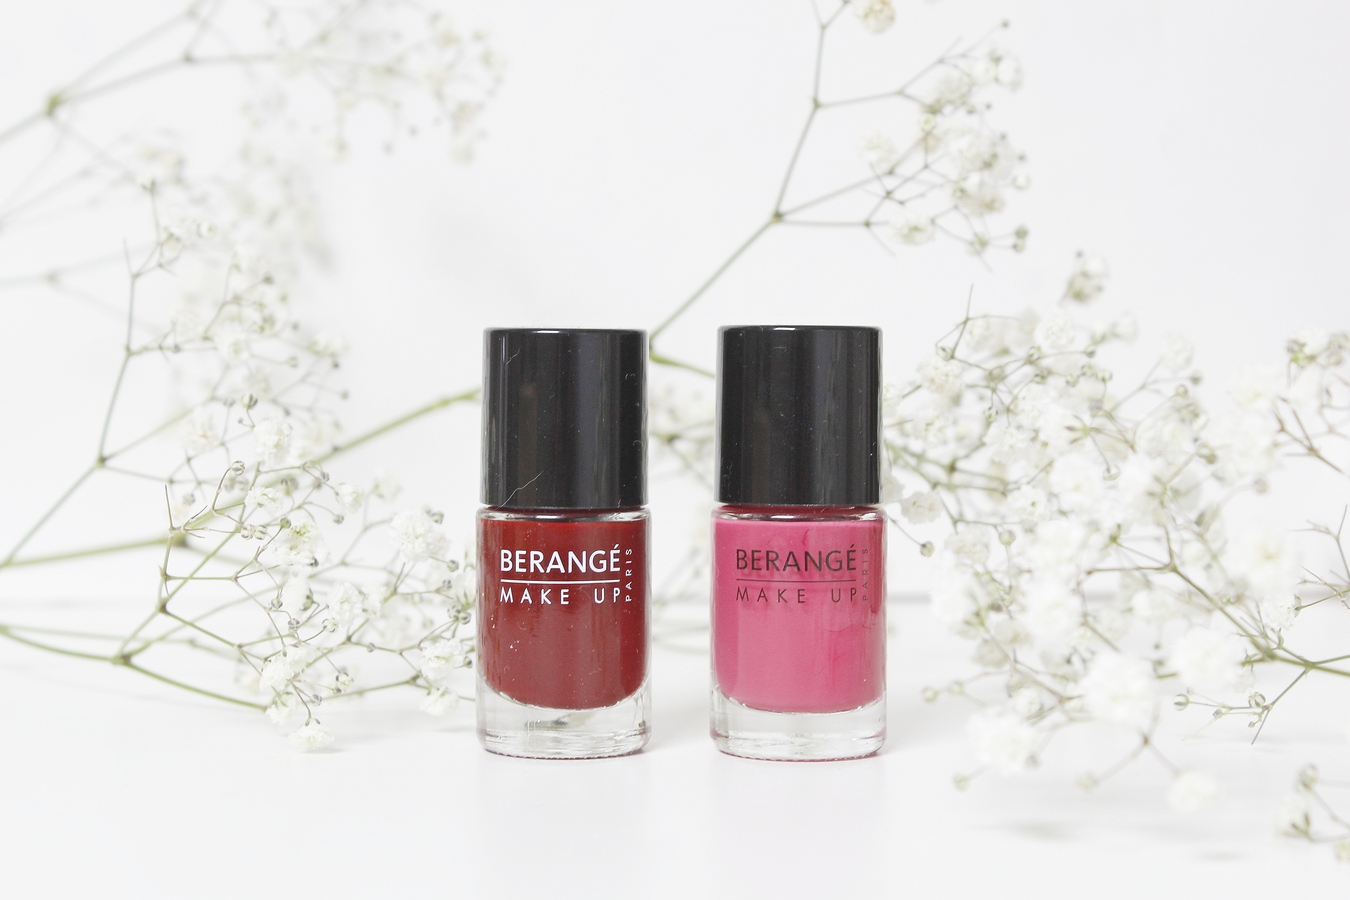 Vernis grand format, Bérange Make Up